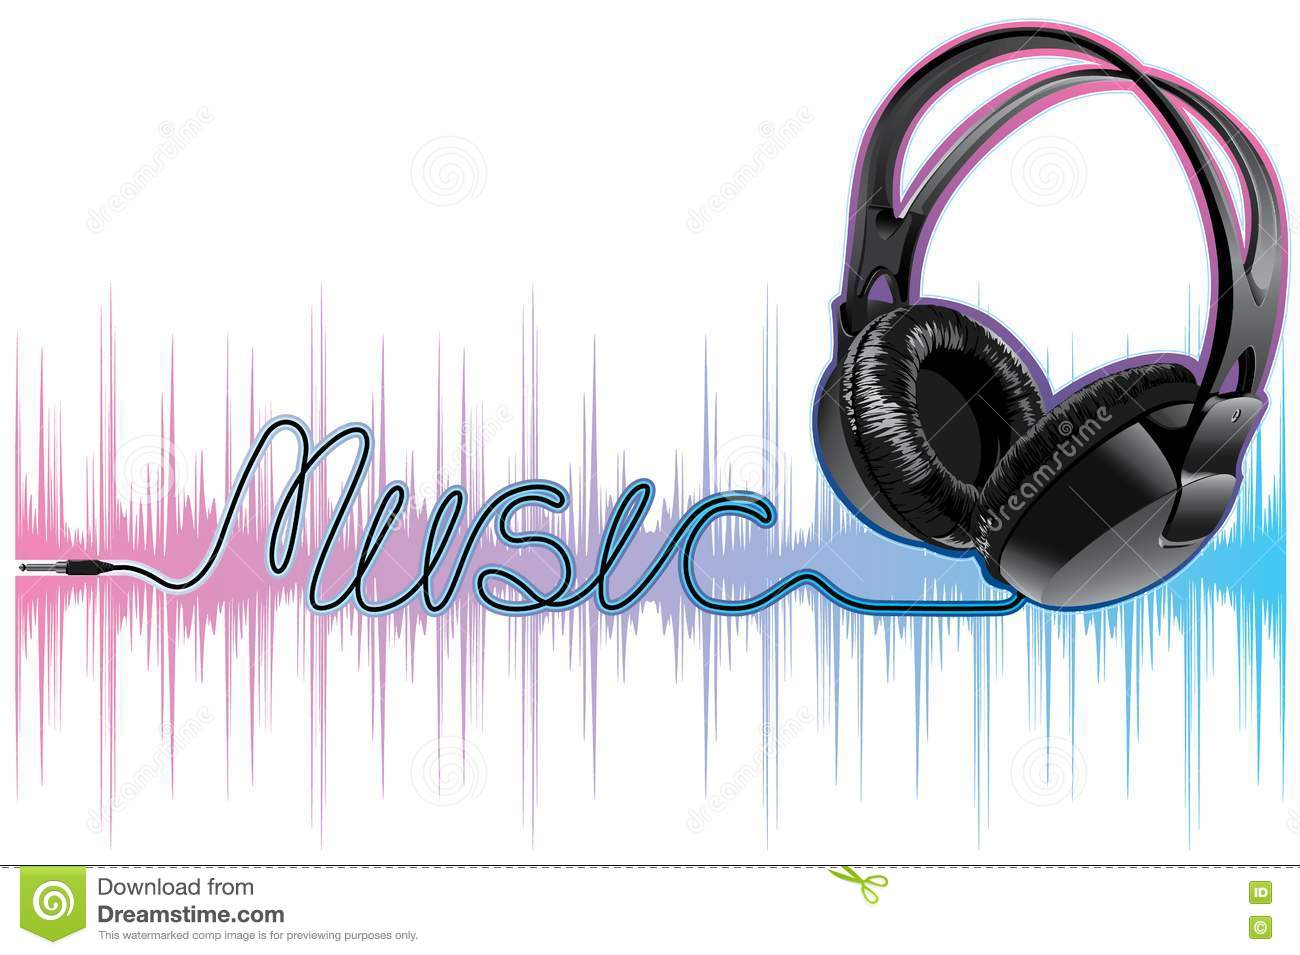 Neon Pulsing Music Headphones Stock Vector - Image: 16944764